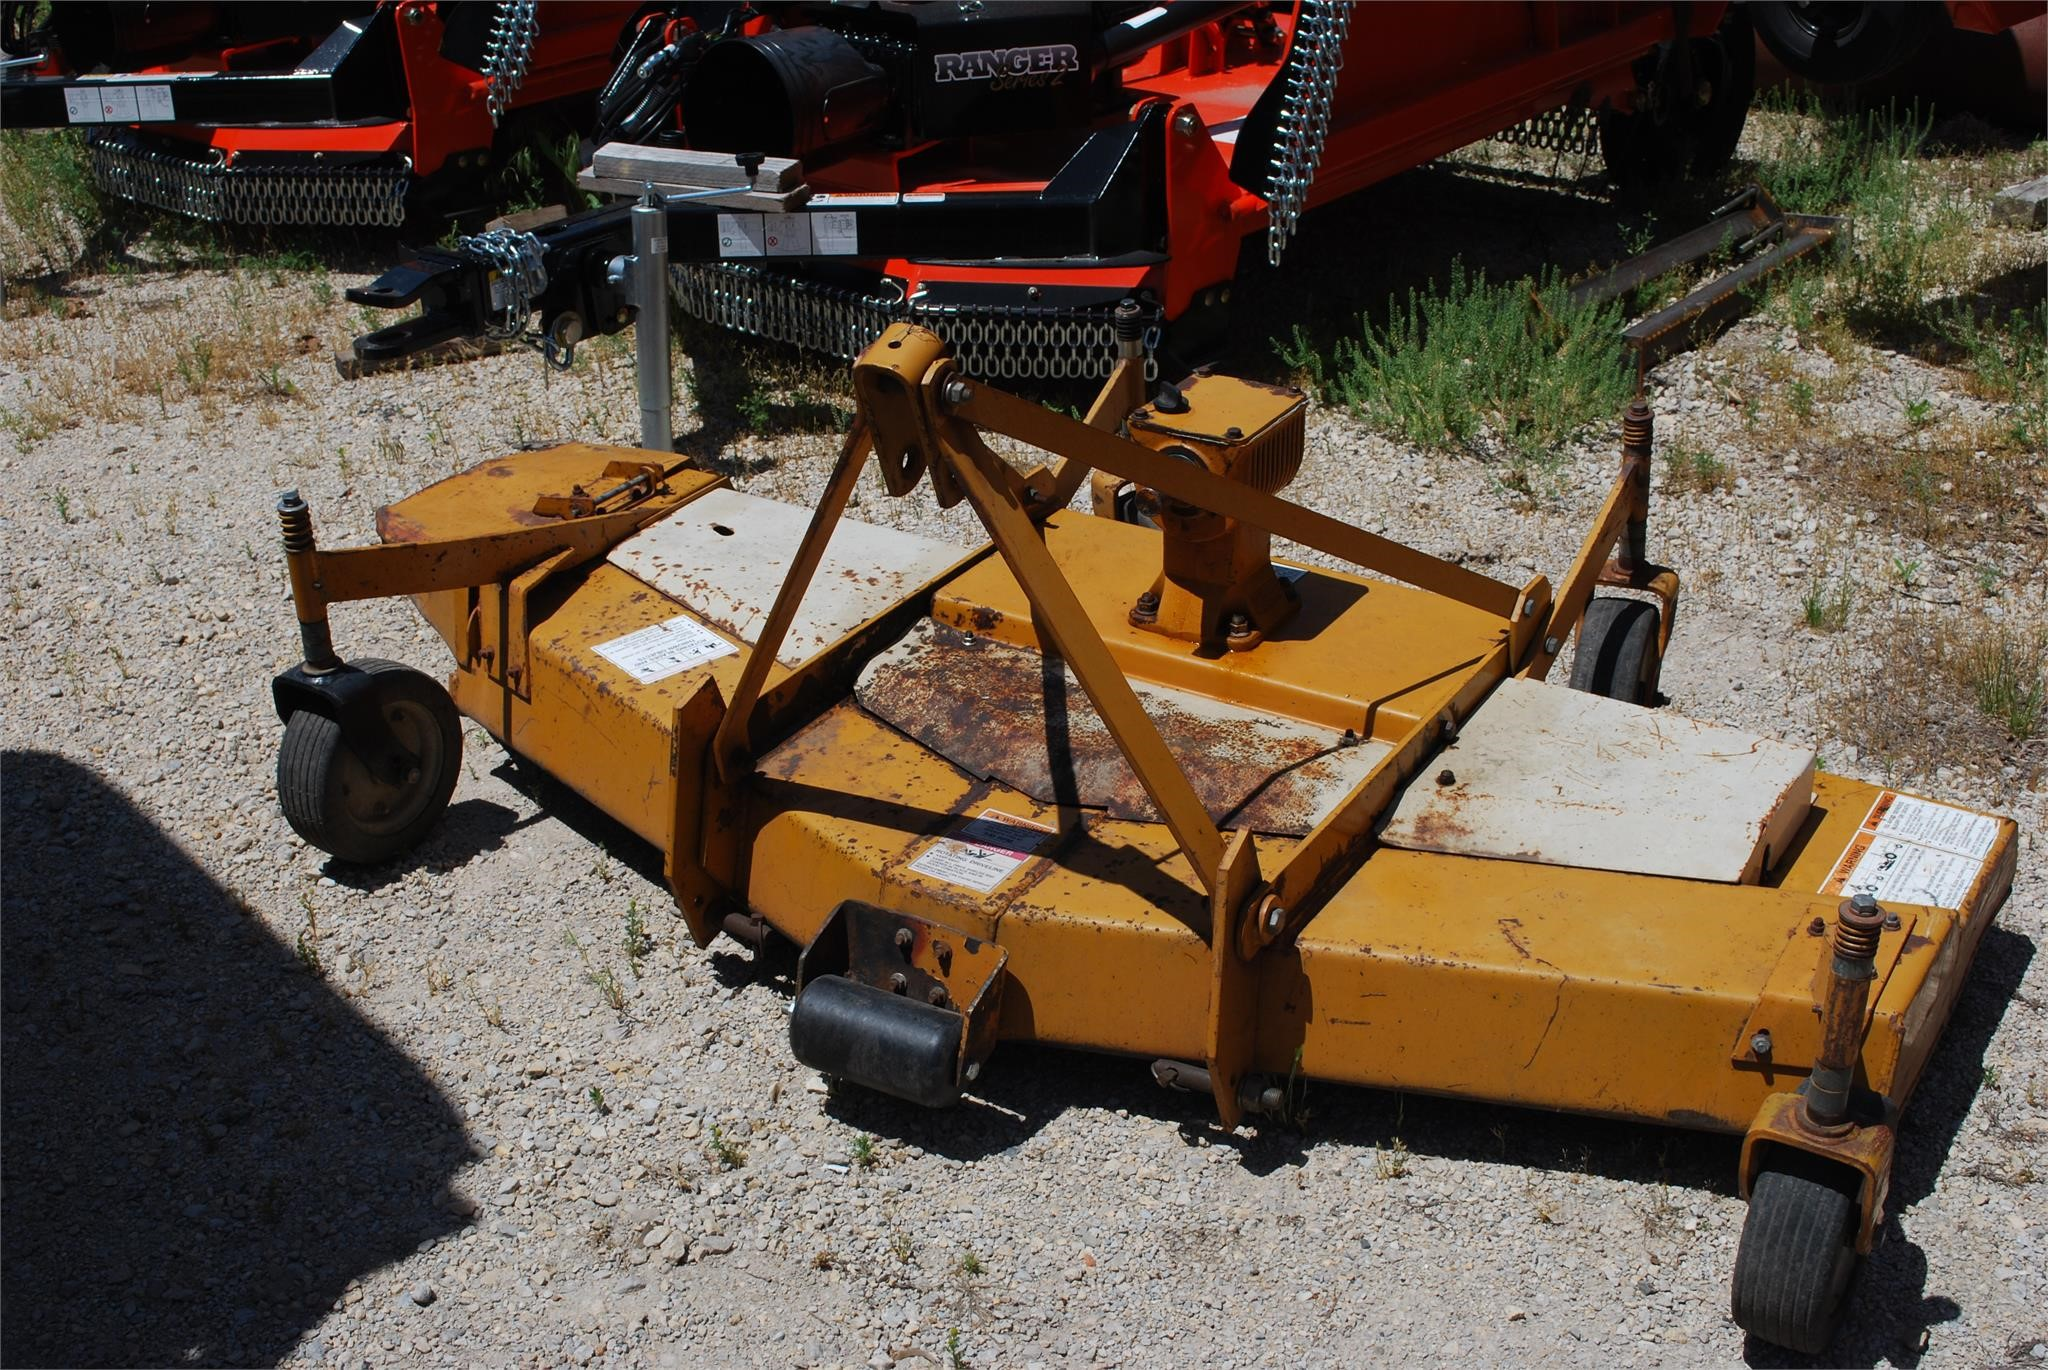 Woods RM660-1 Rotary Cutter